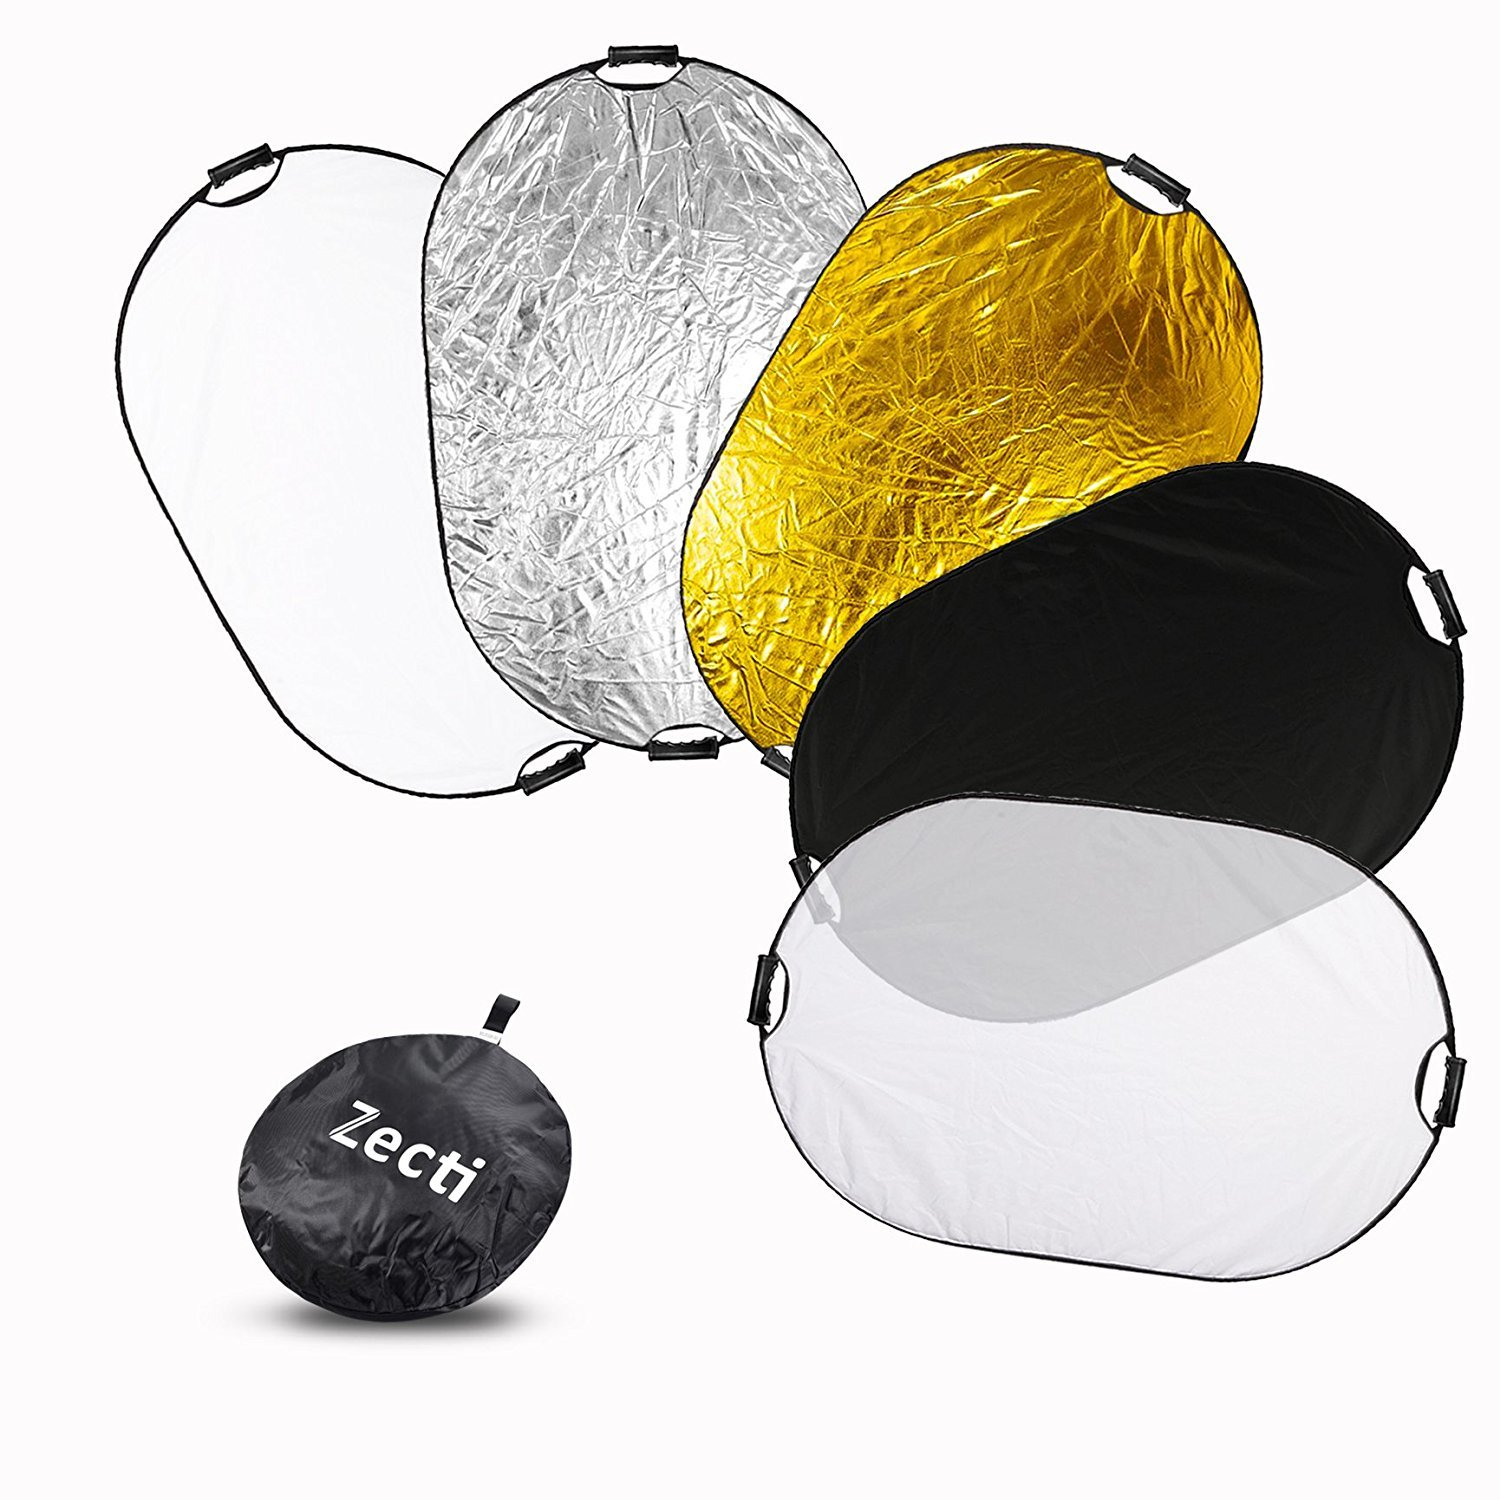 Zecti ZT-009 5 in 1 Collapsible Multi-Disc Photography Light Reflector, 40'' x 59'', Black